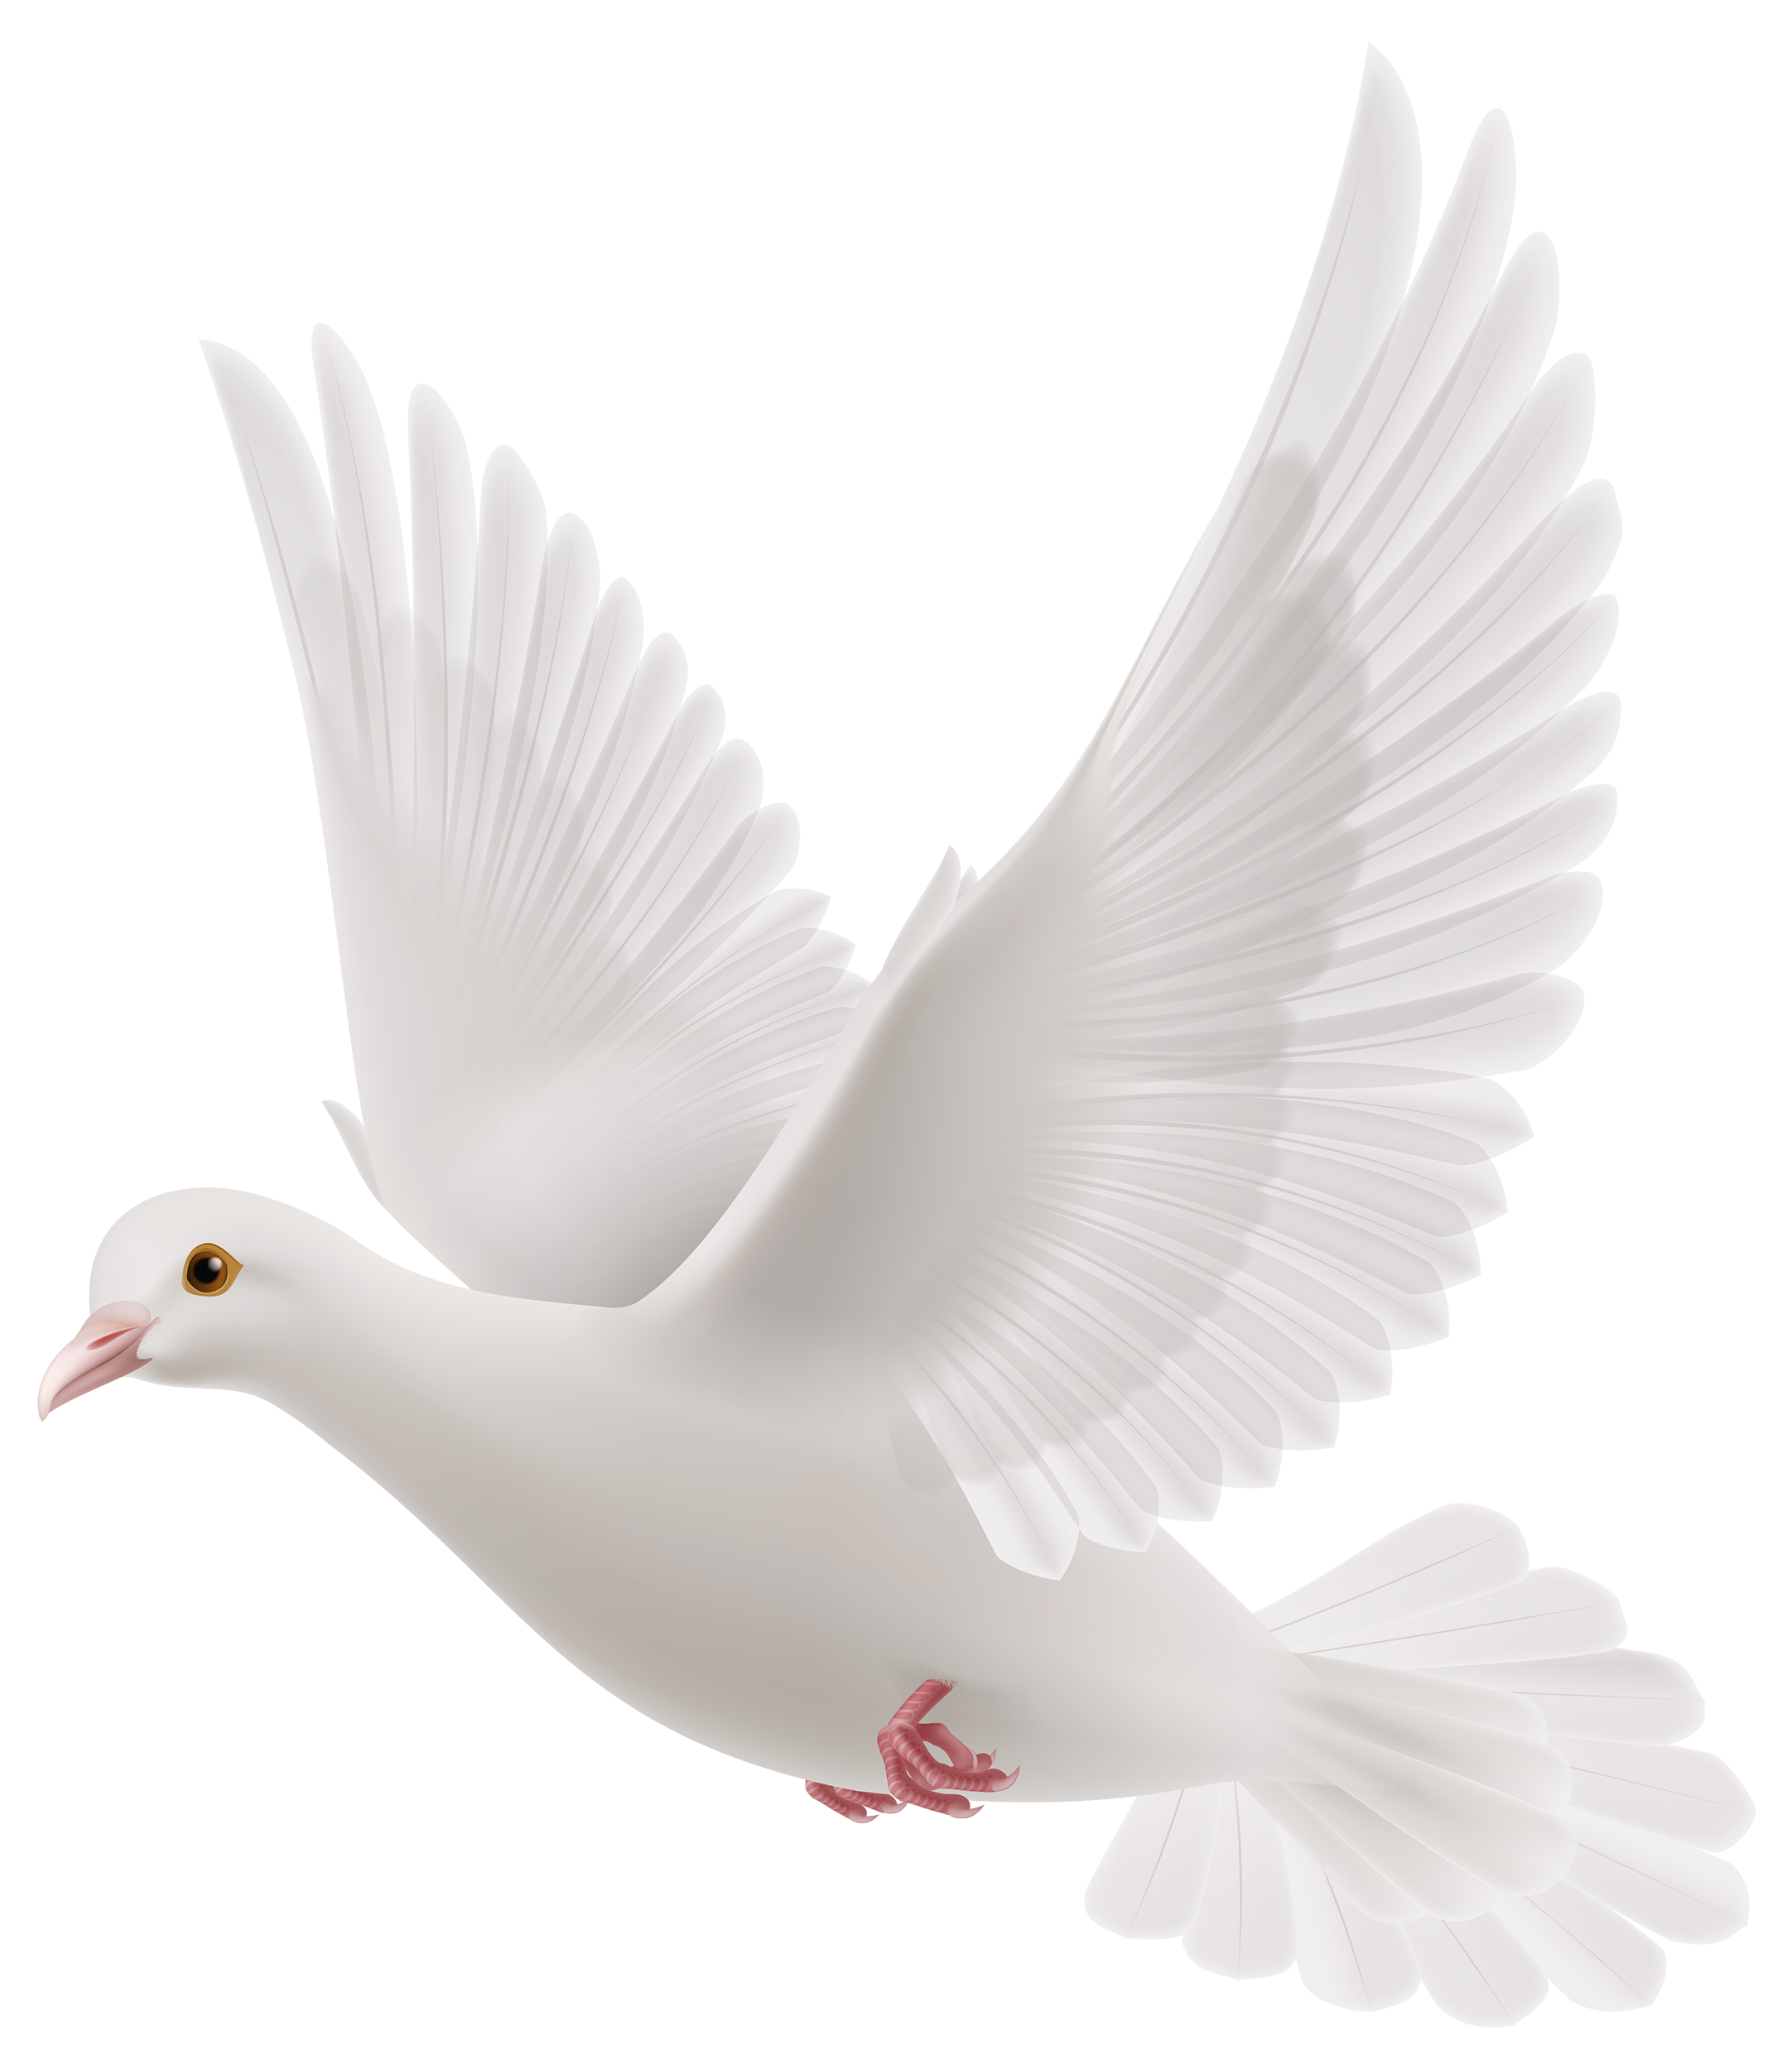 Couple doves for wedding png. Look i am sending